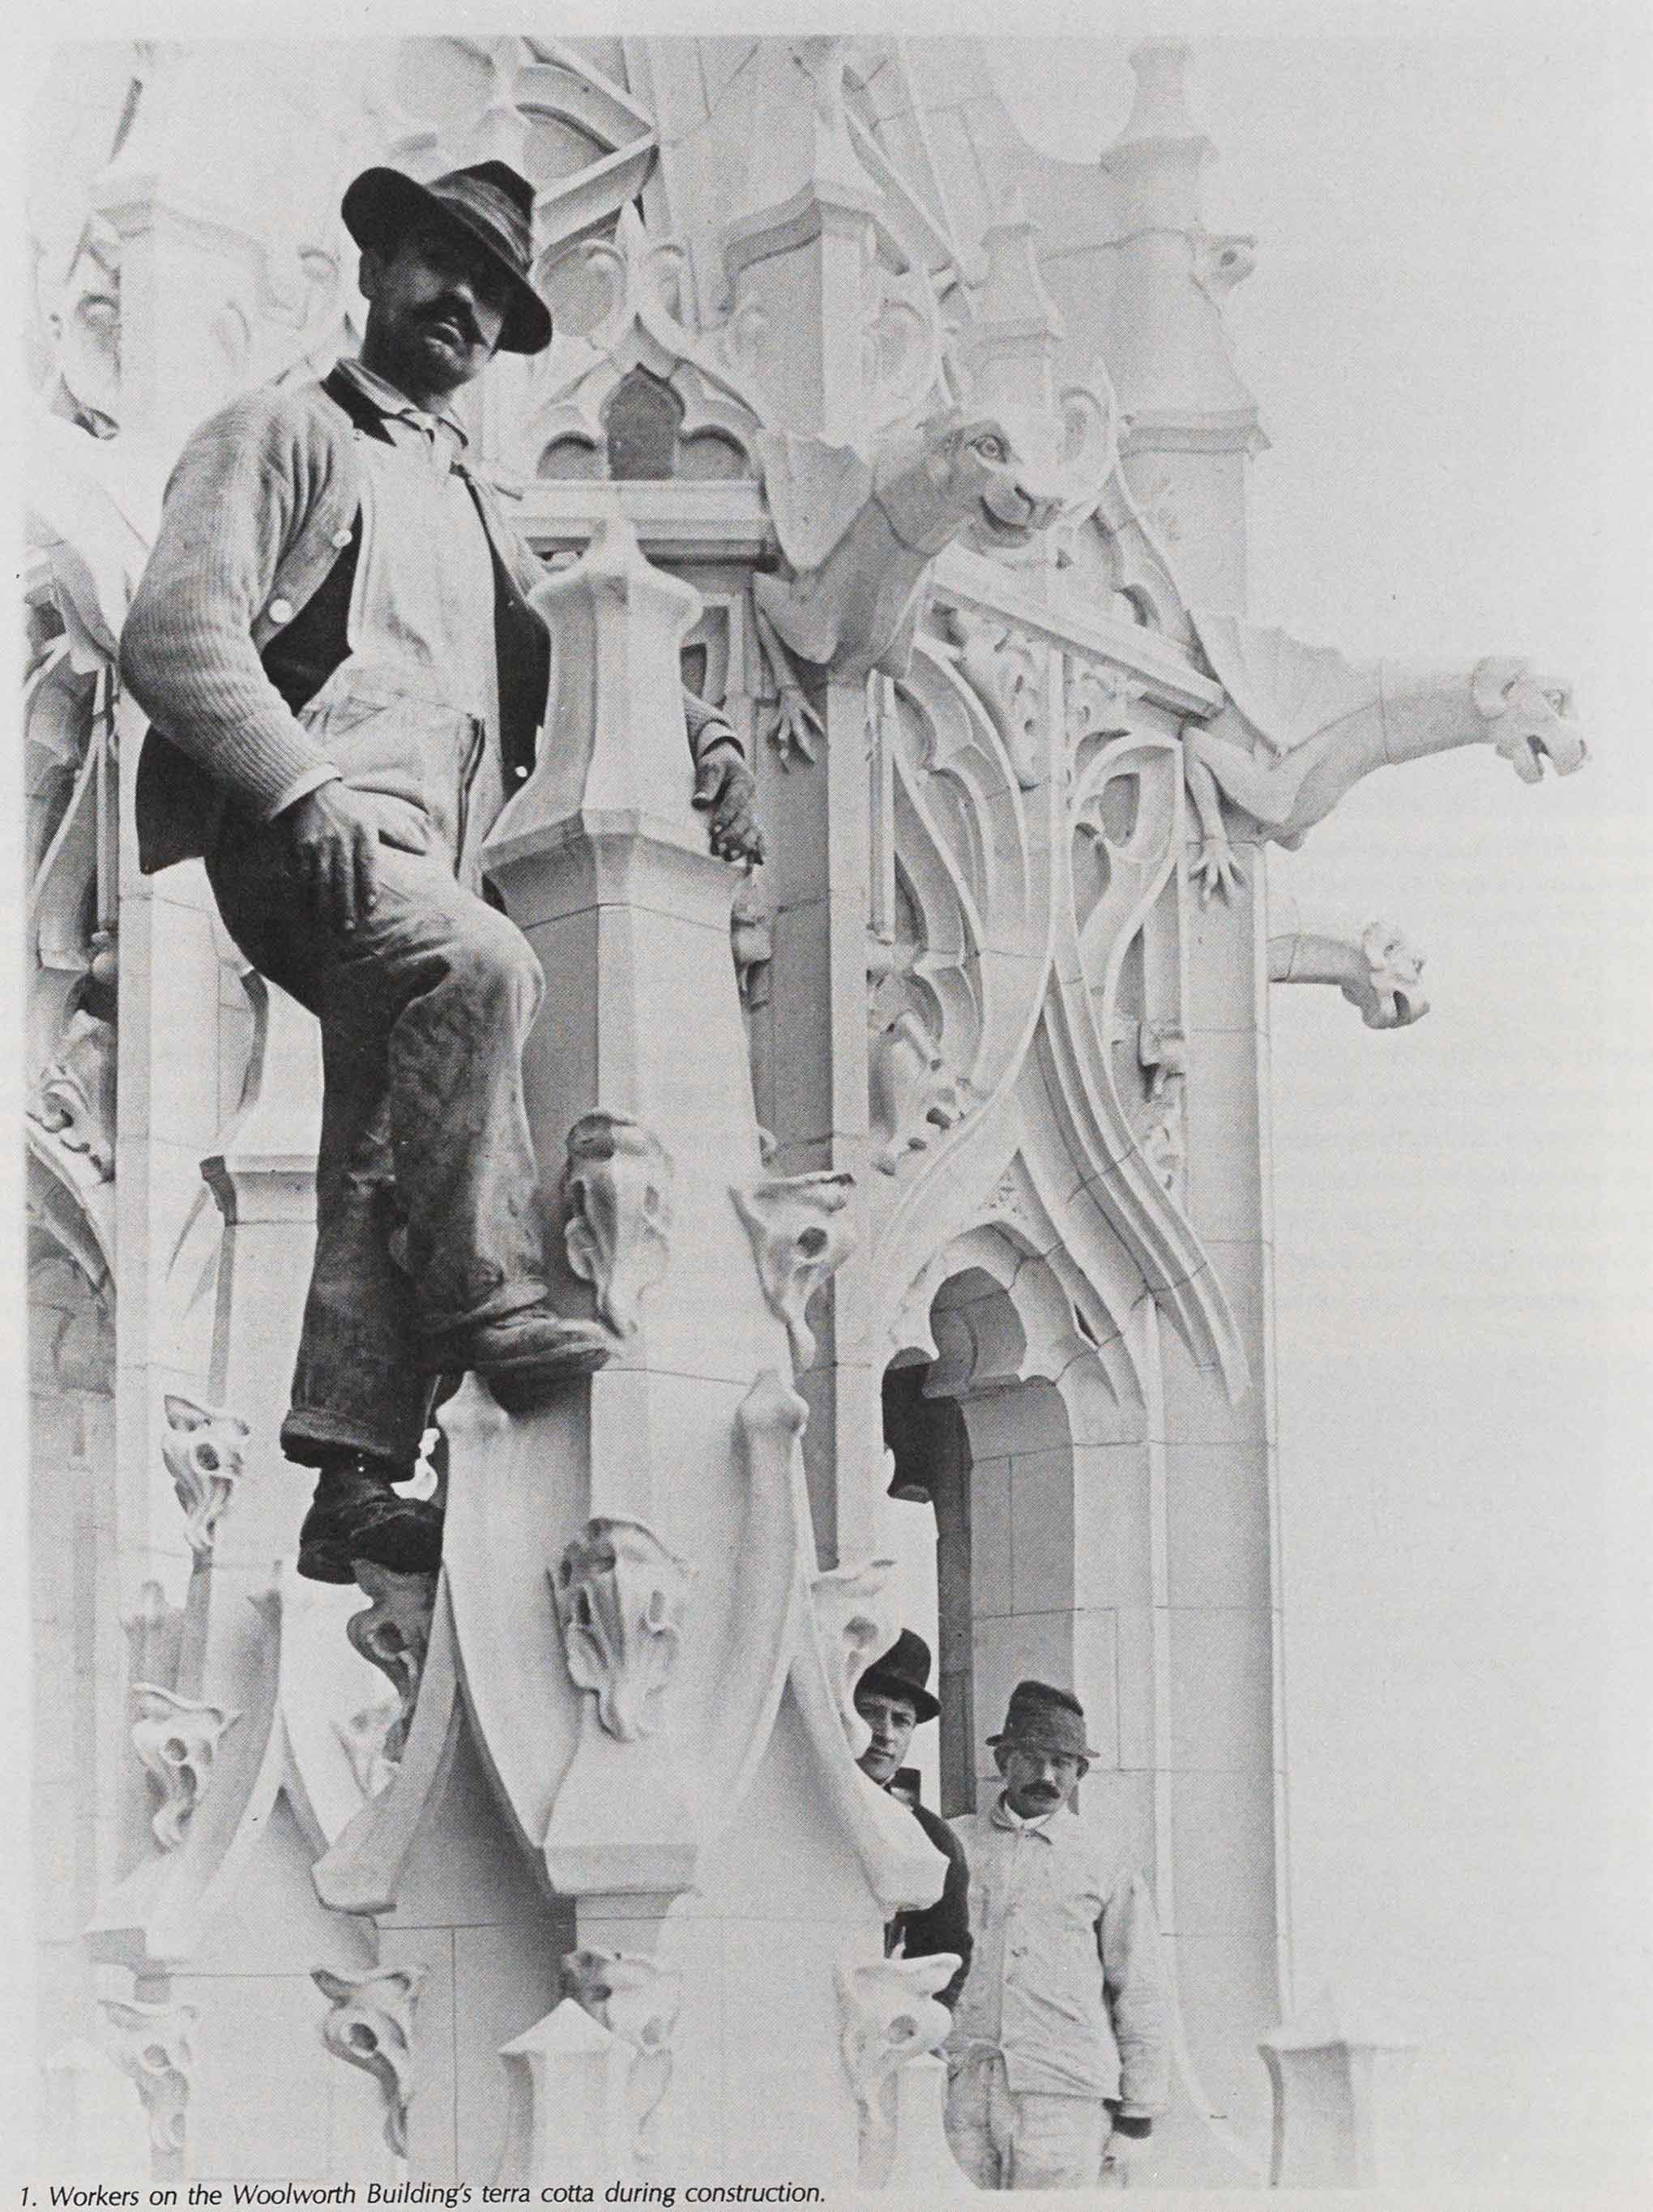 Workers on the Woolworth Building's terra cotta during construction, 1913.